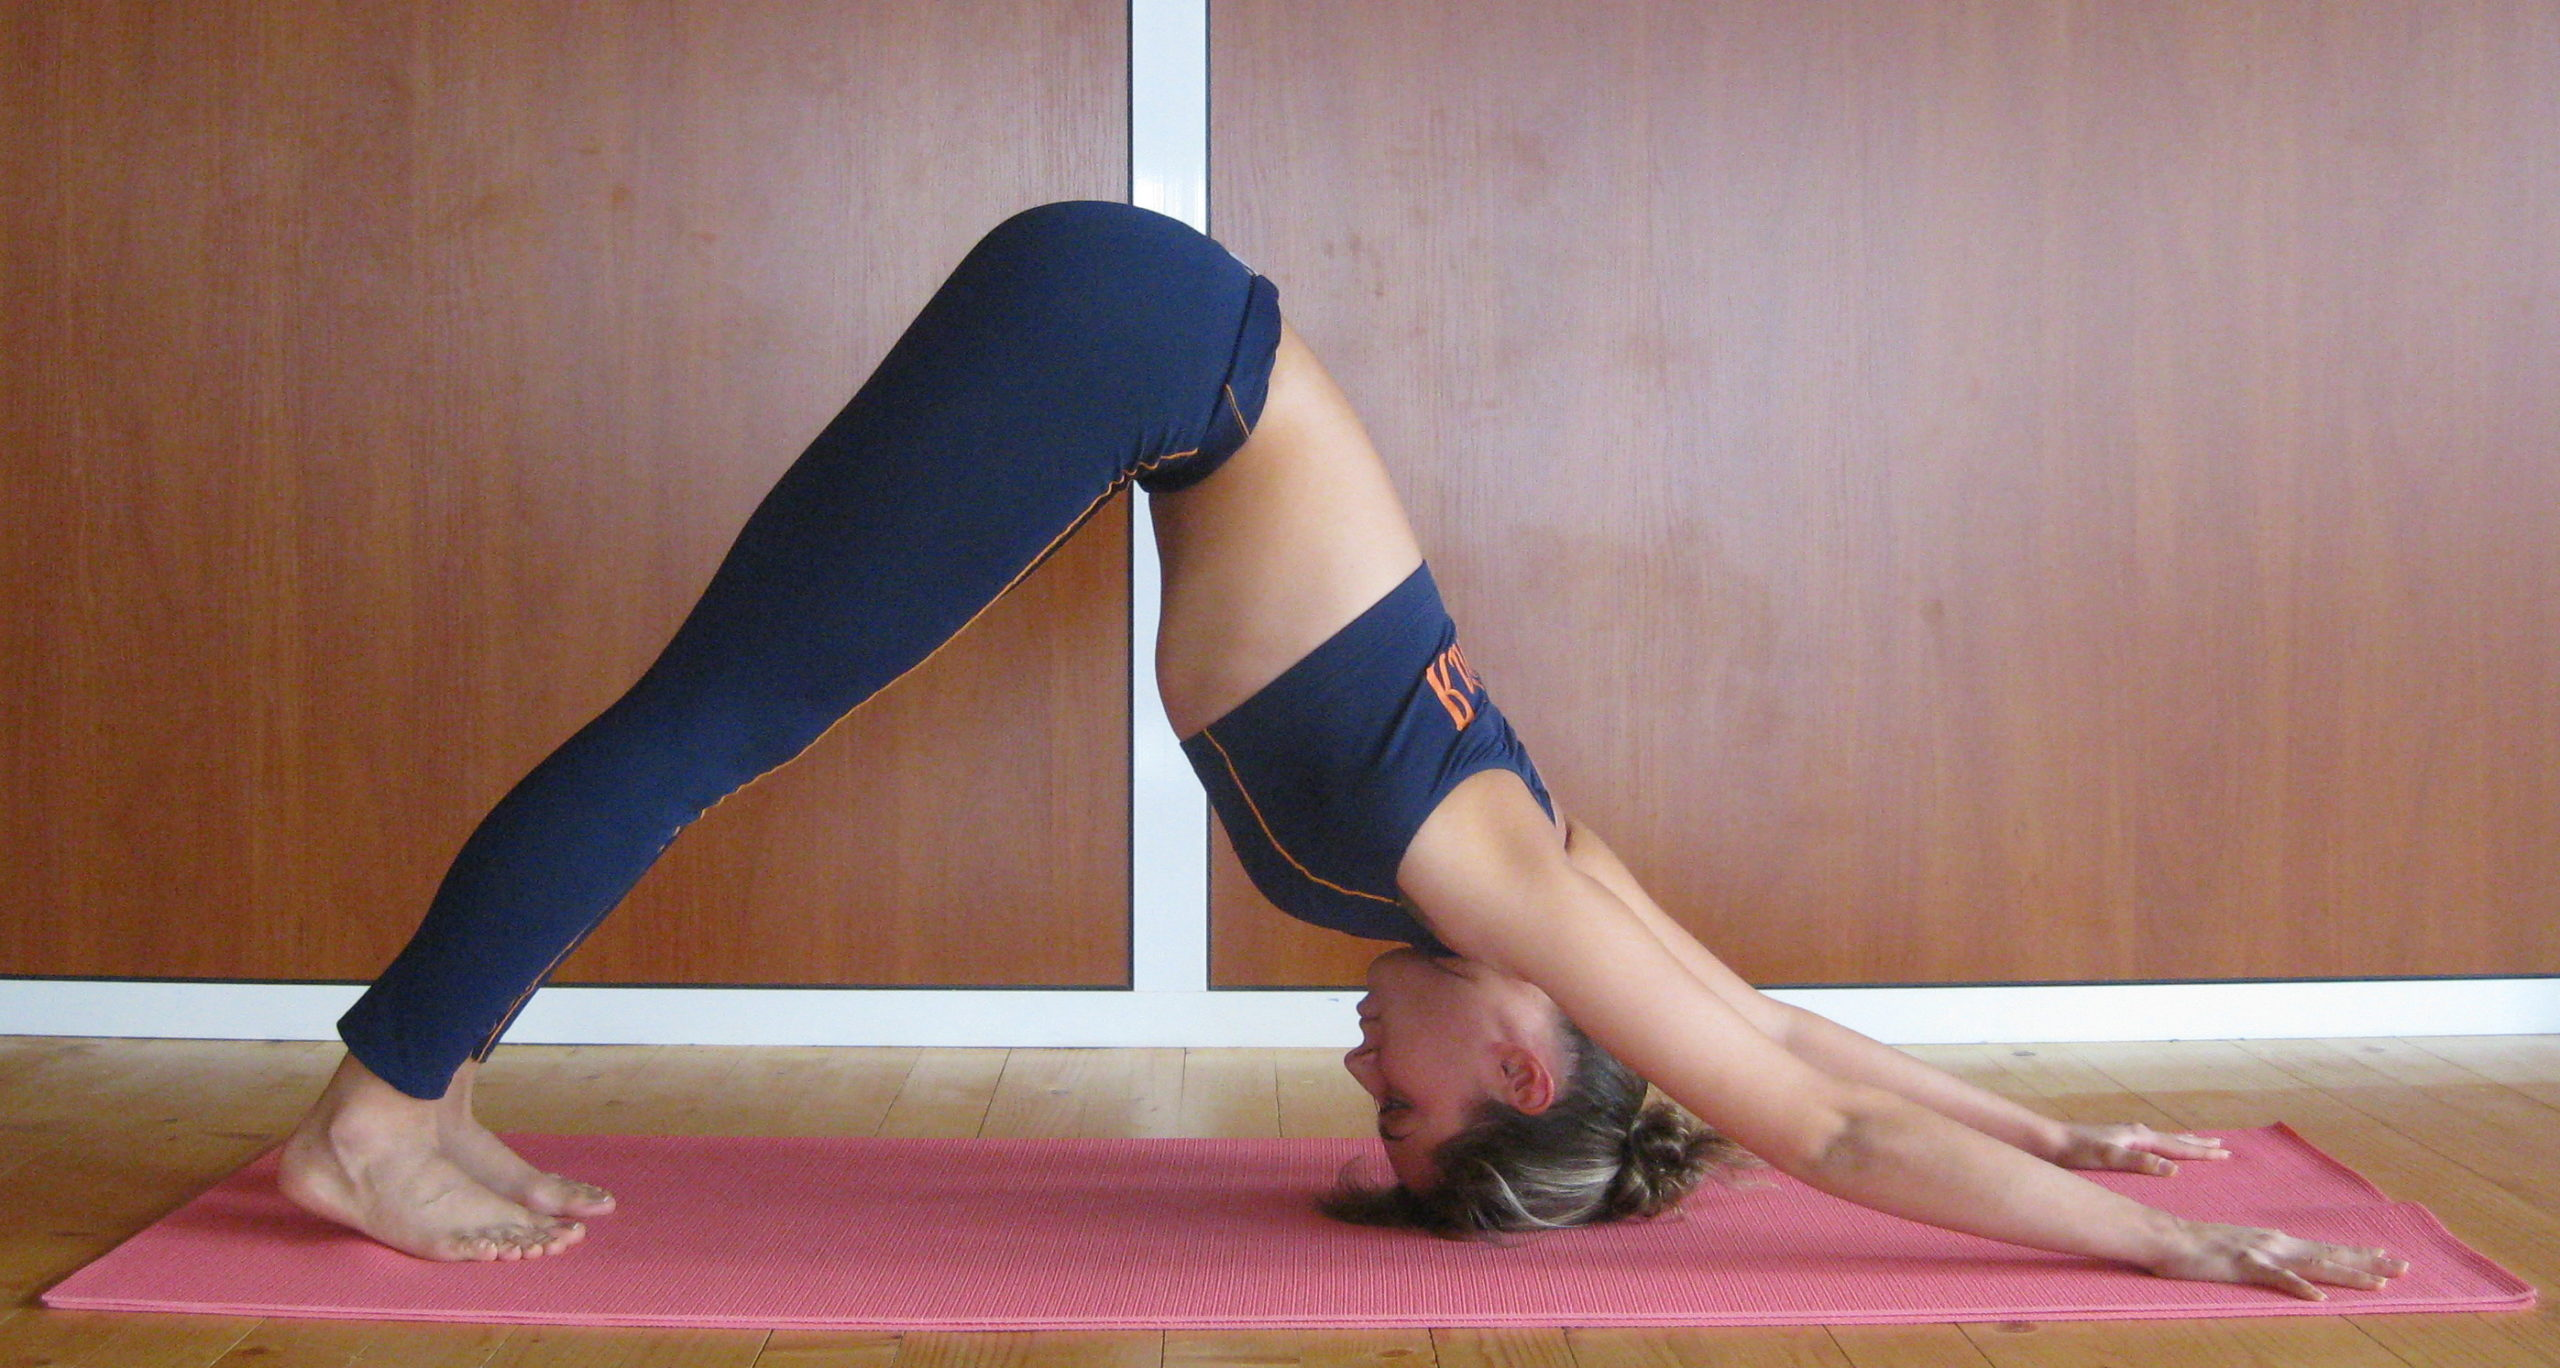 Downward back workouts from home